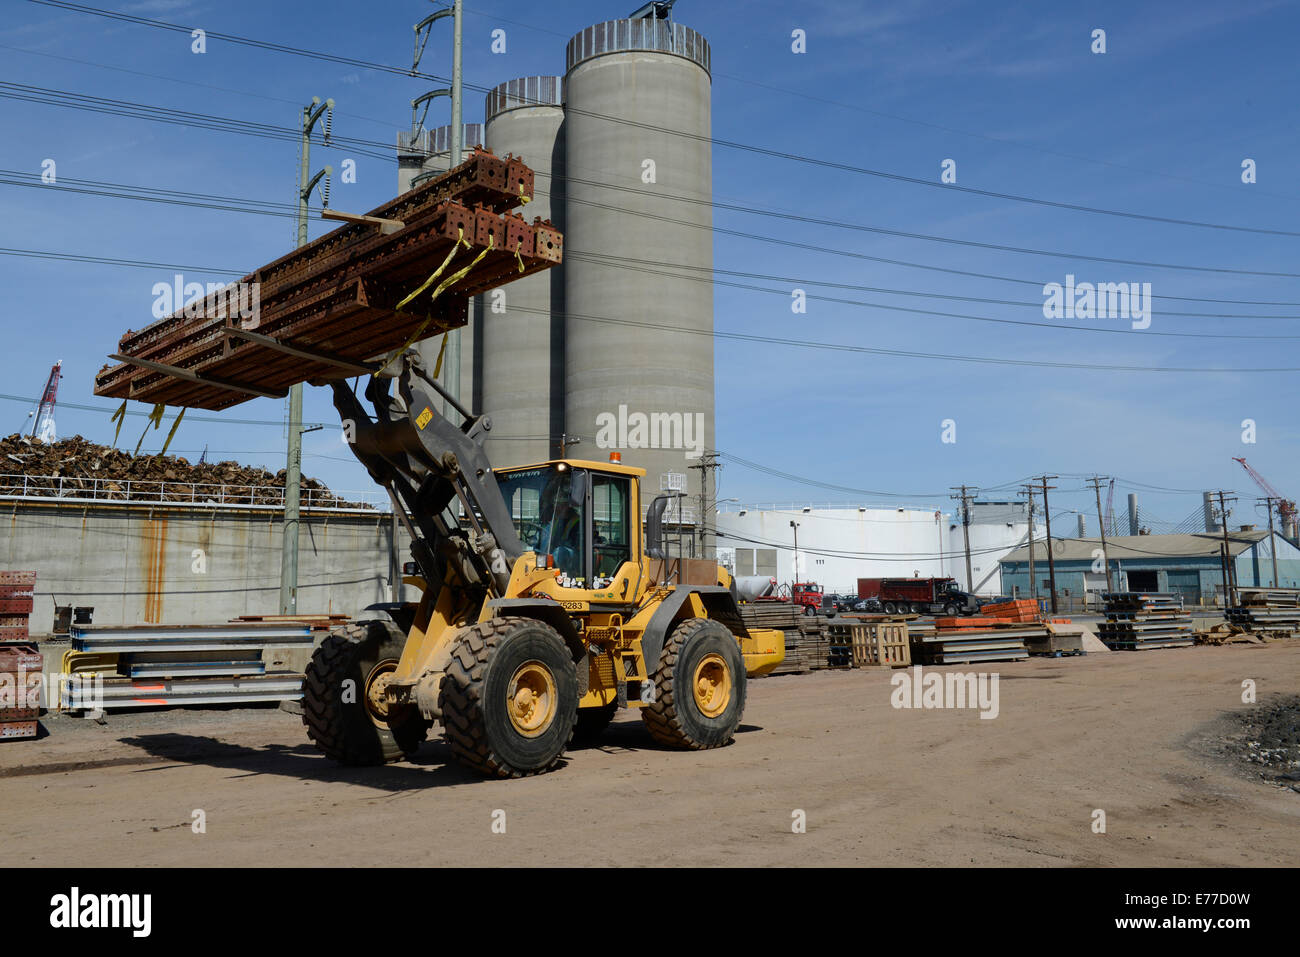 Volvo All terrain or rough terrain forklift at construction site - Stock Image